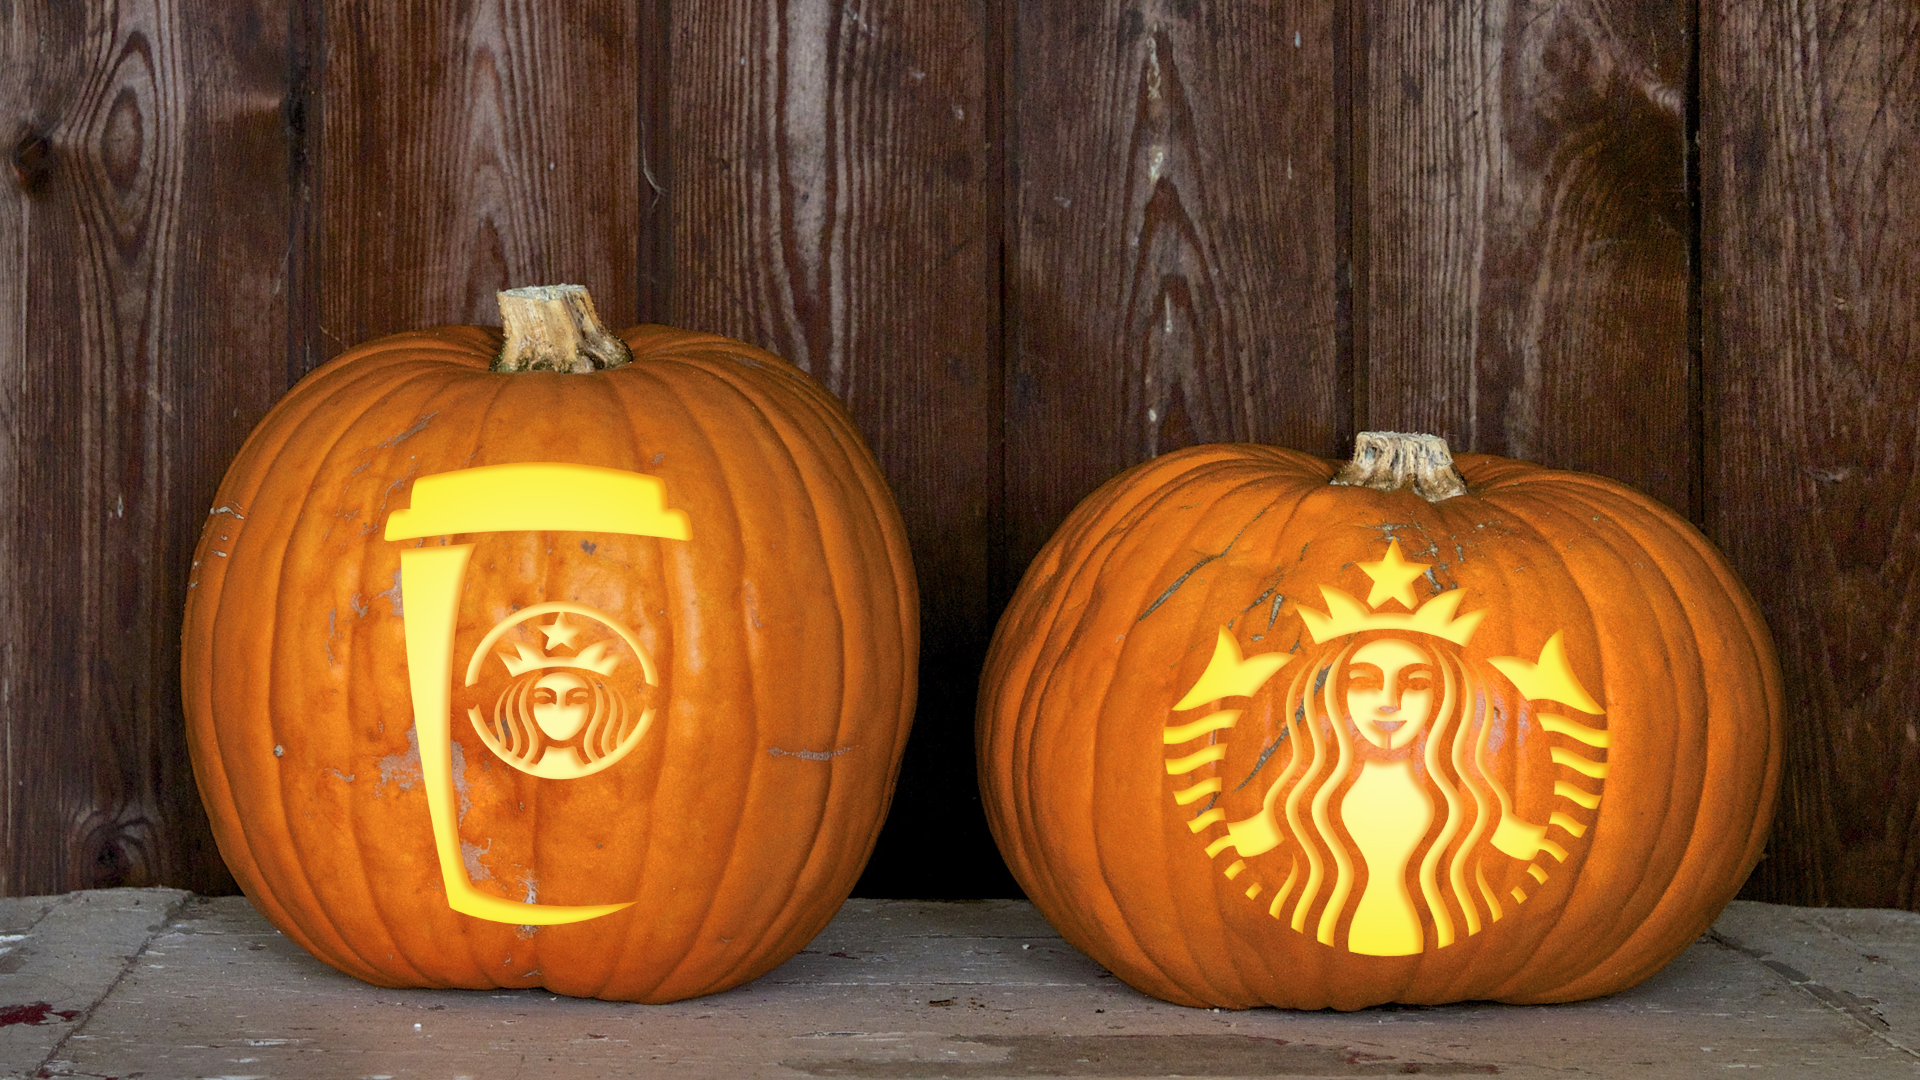 Pop culture pumpkin carving templates only adults can for Different pumpkin designs